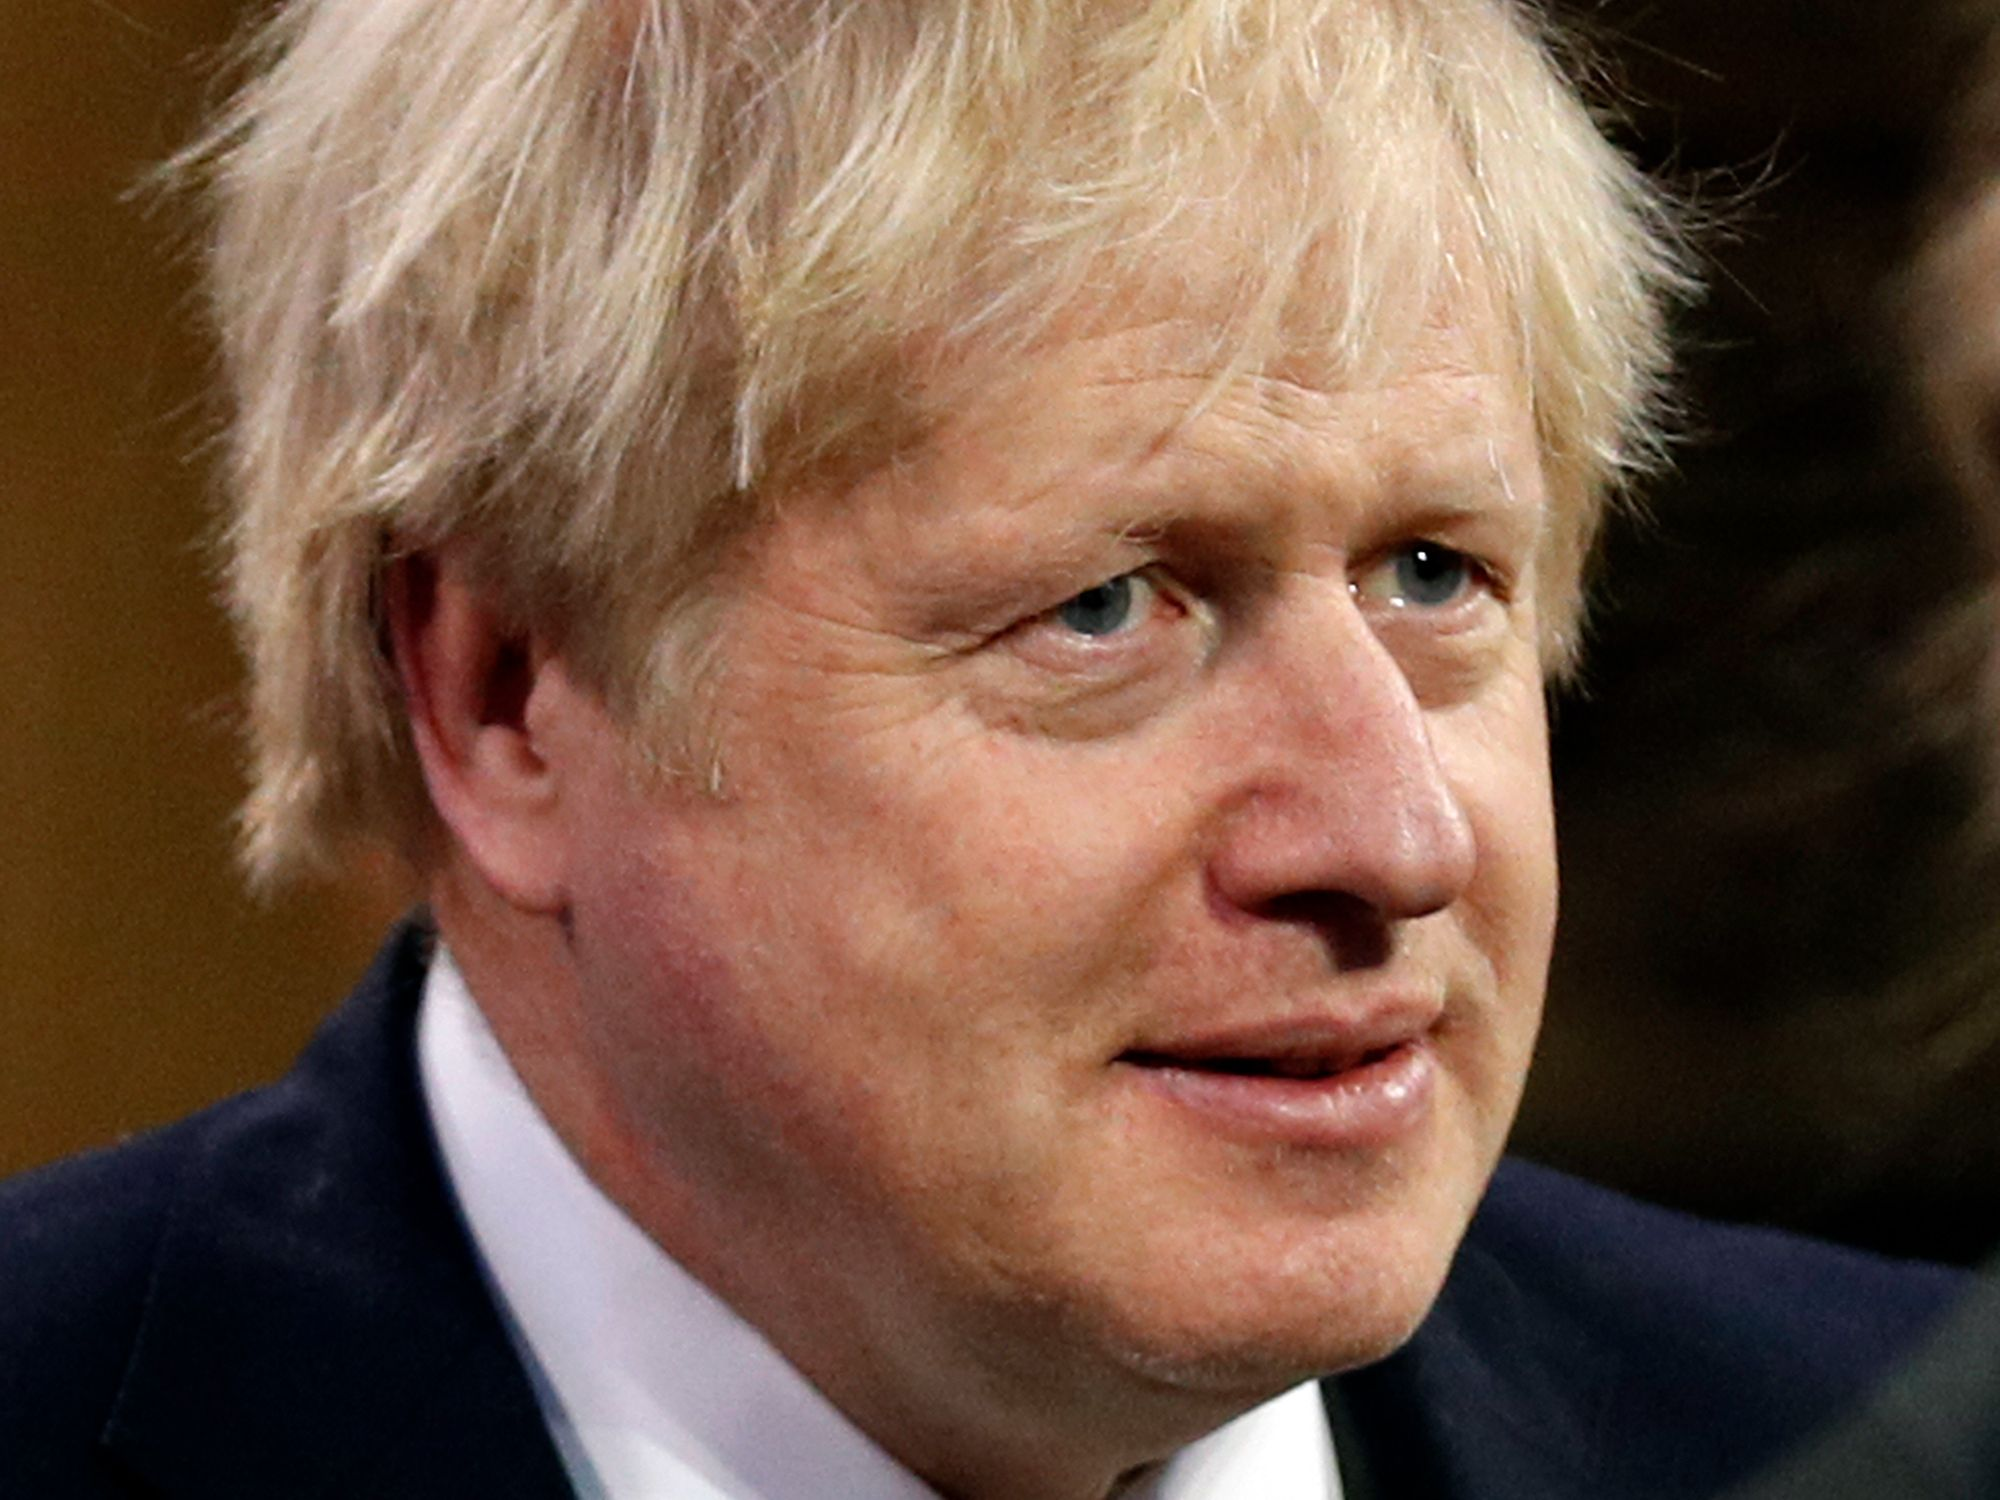 Johnson Won't 'Die in a Ditch' Over Brexit Timeline, Hogan Says